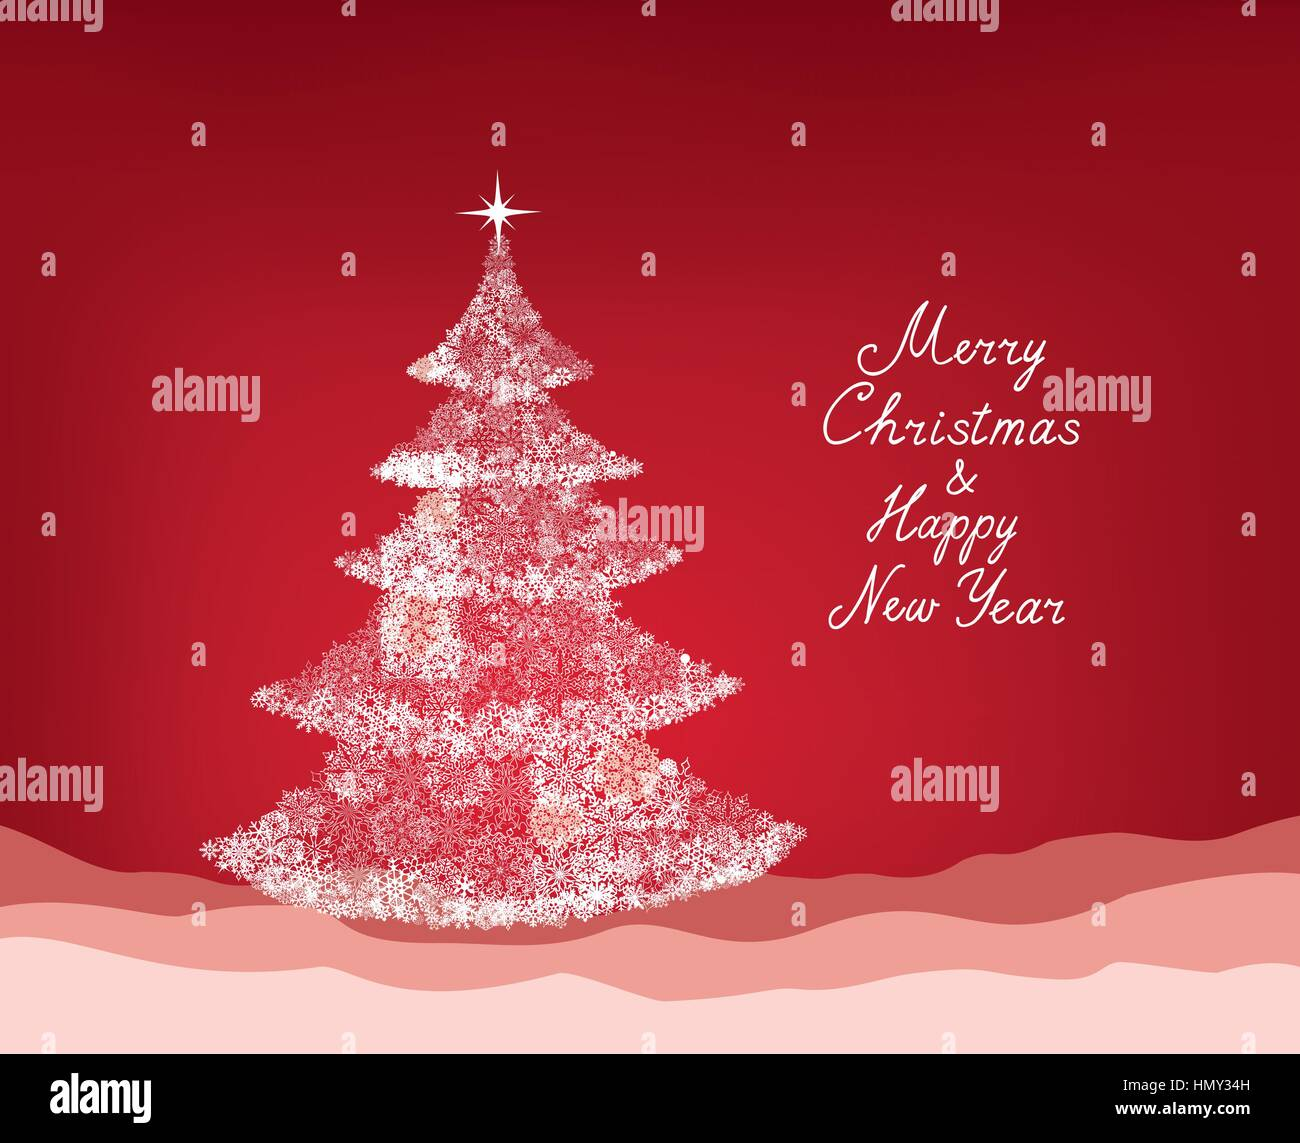 Christmas background with New Year Tree, Snow and